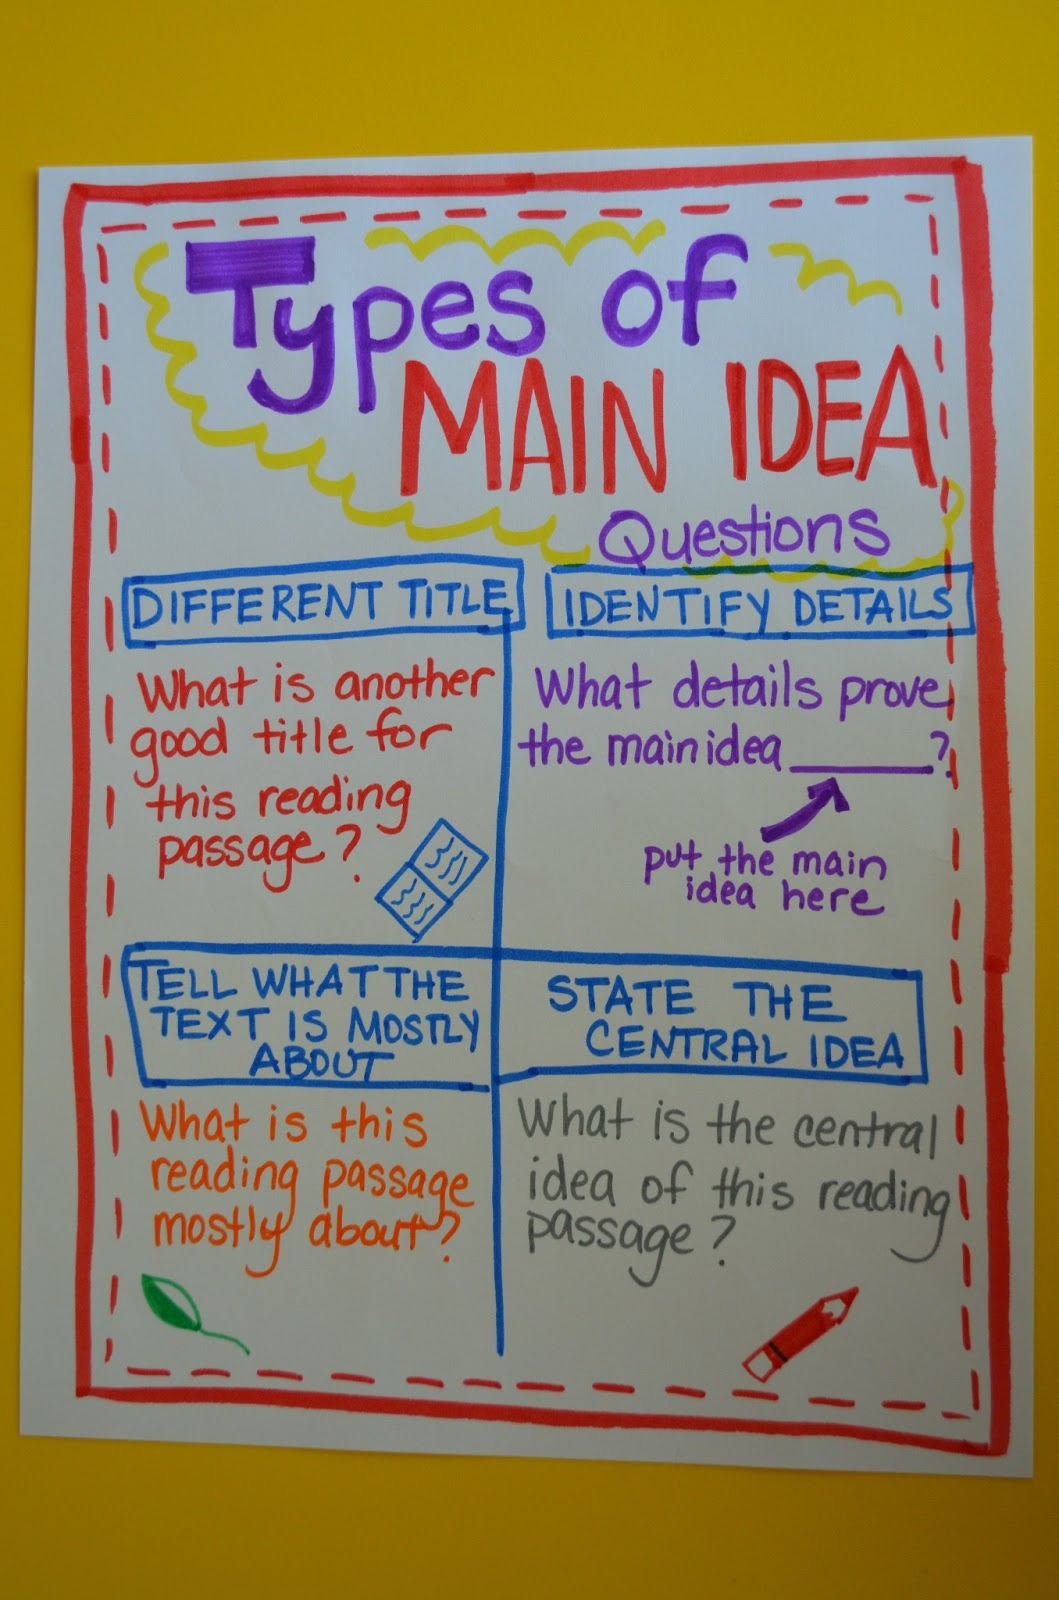 Literacy Amp Math Ideas Different Types Of Main Idea Questions